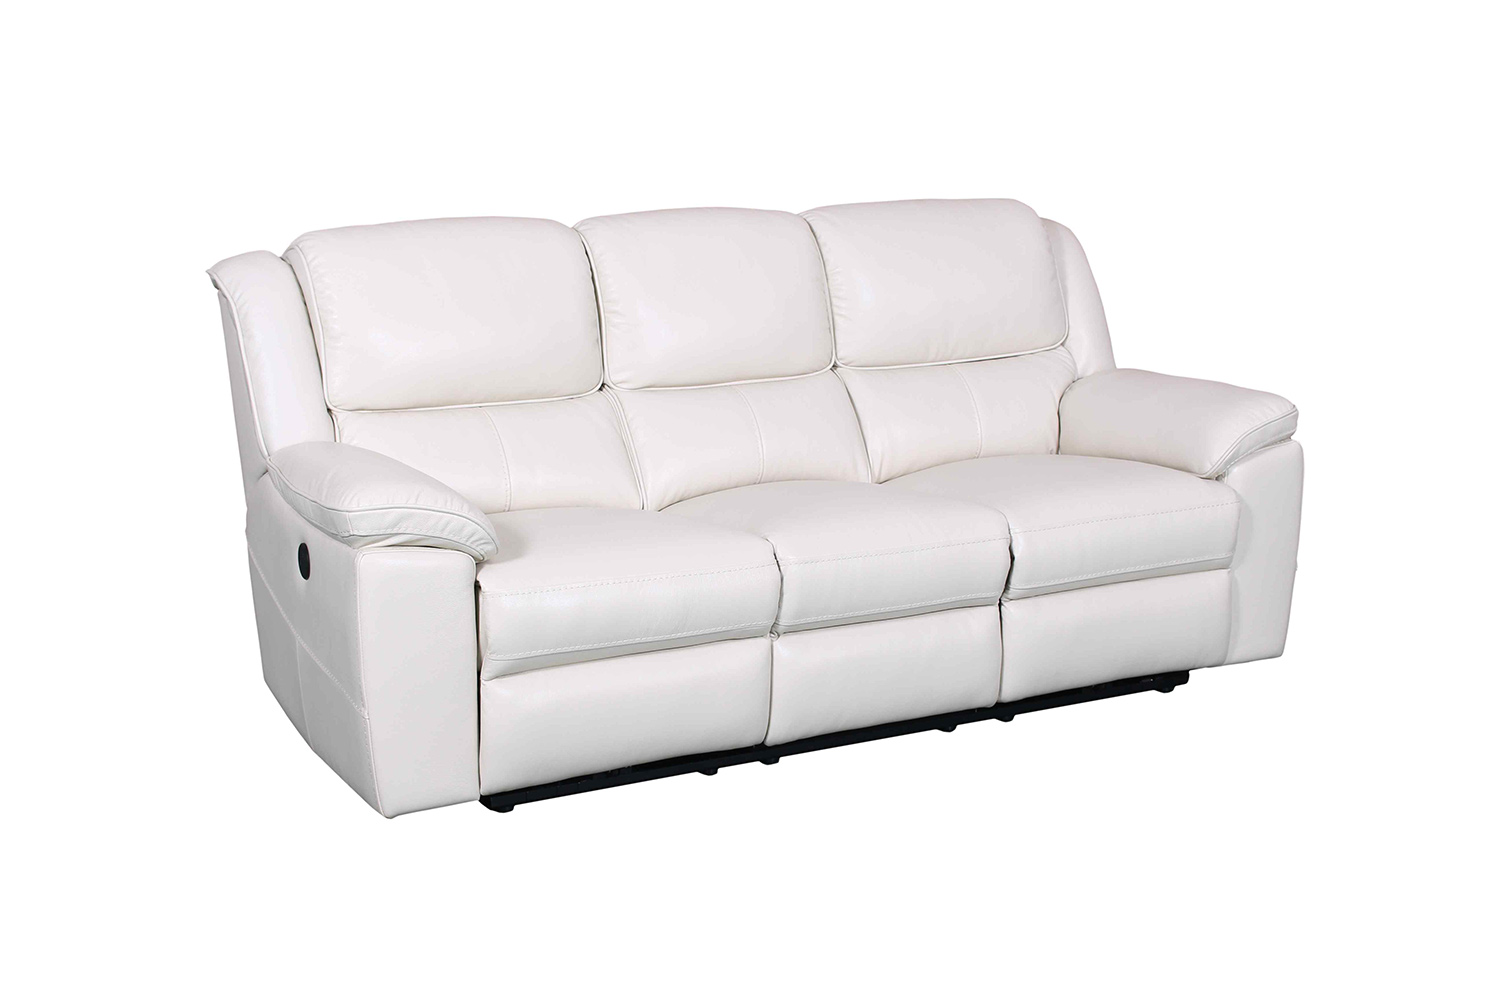 Barcalounger Laguna Power Reclining Sofa - Cashmere White/Leather Match